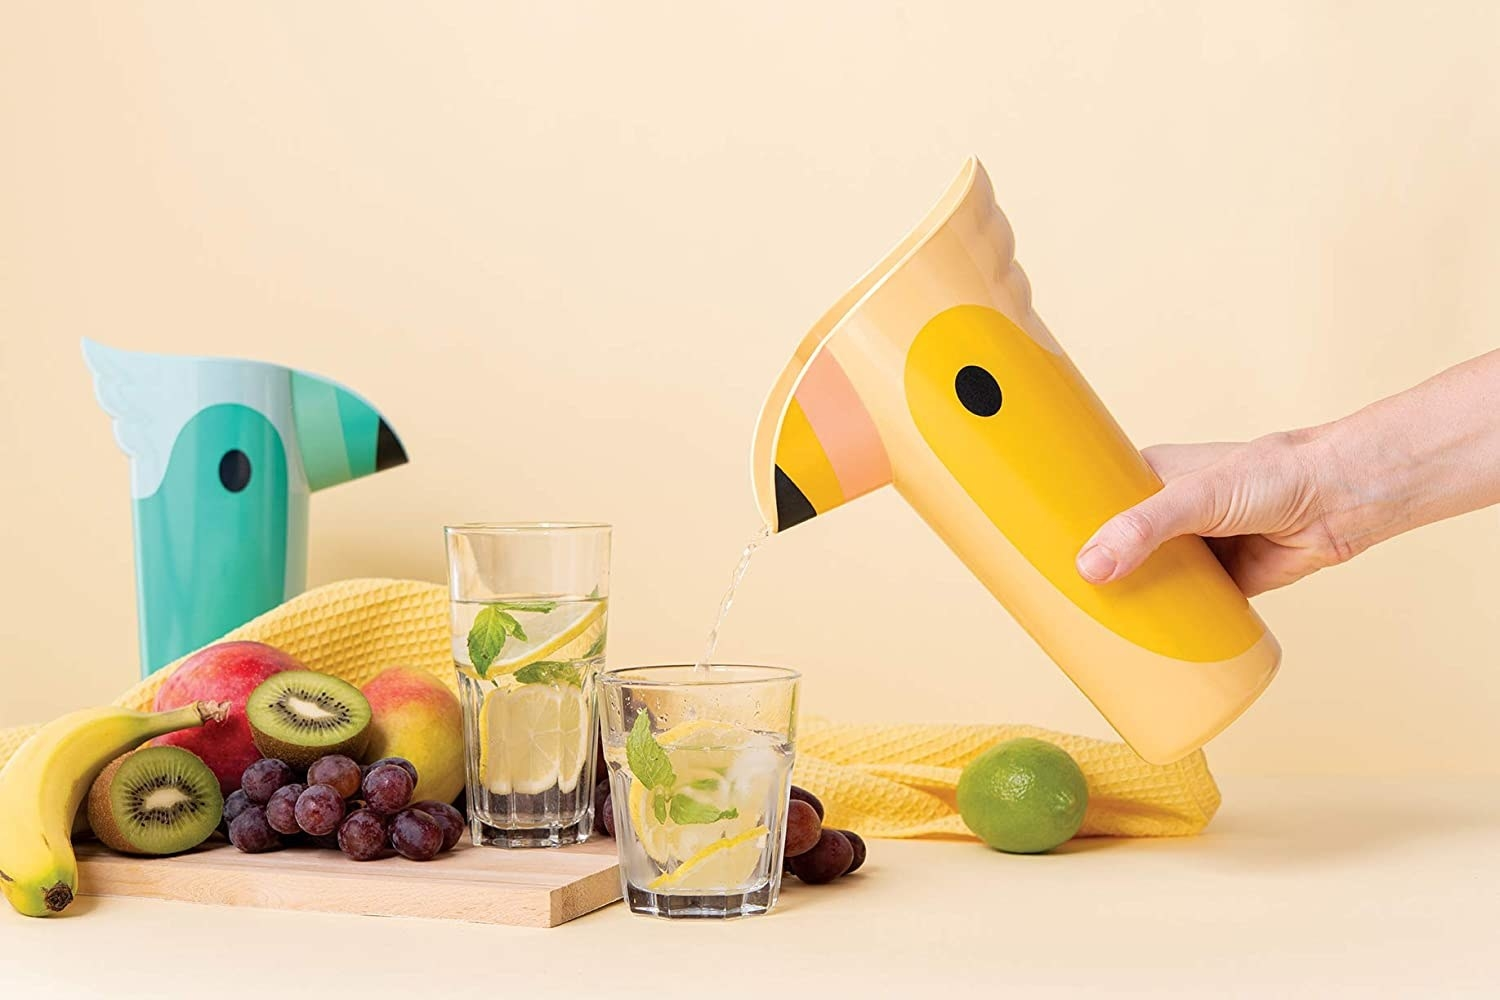 model's hand holding the yellow toucan pitcher which has lemonade coming out of it that's going into a glass. There's a turquoise pitcher also sitting next to another glass.